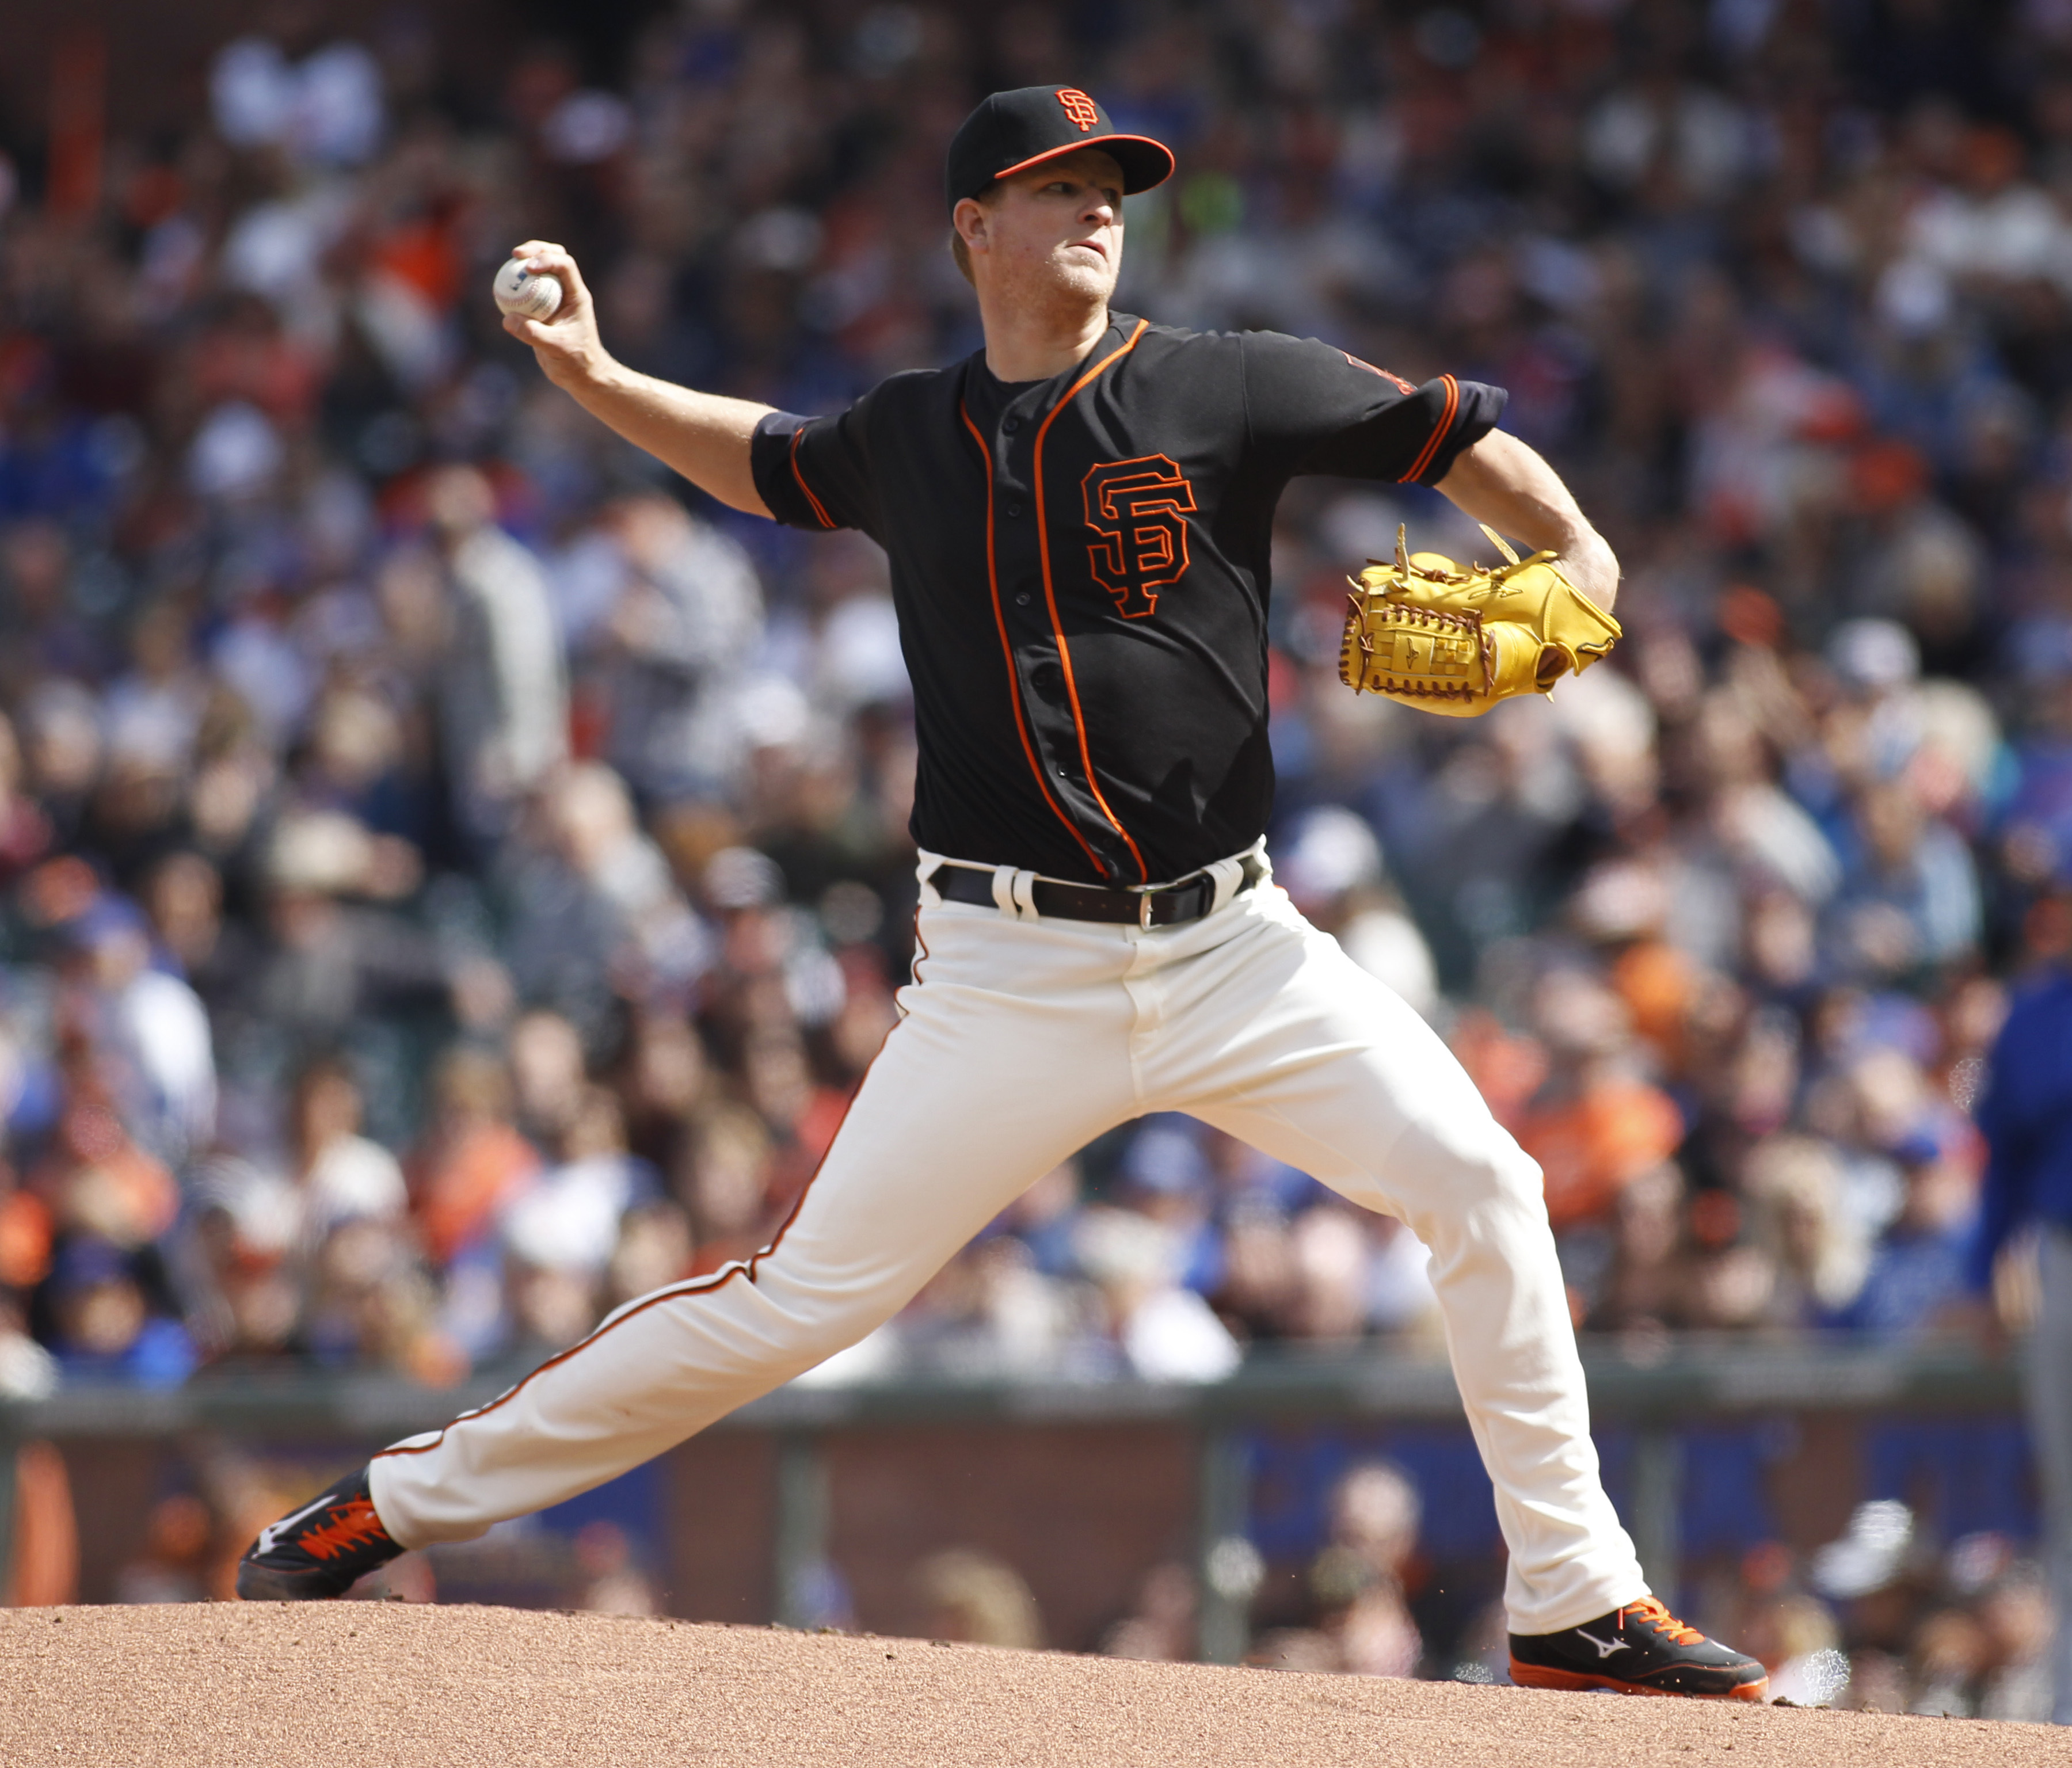 San Francisco Giants pitcher Matt Cain throws to the Chicago Cubs during the first inning of a baseball game, Saturday, May 21, 2016, in San Francisco. (AP Photo/George Nikitin)